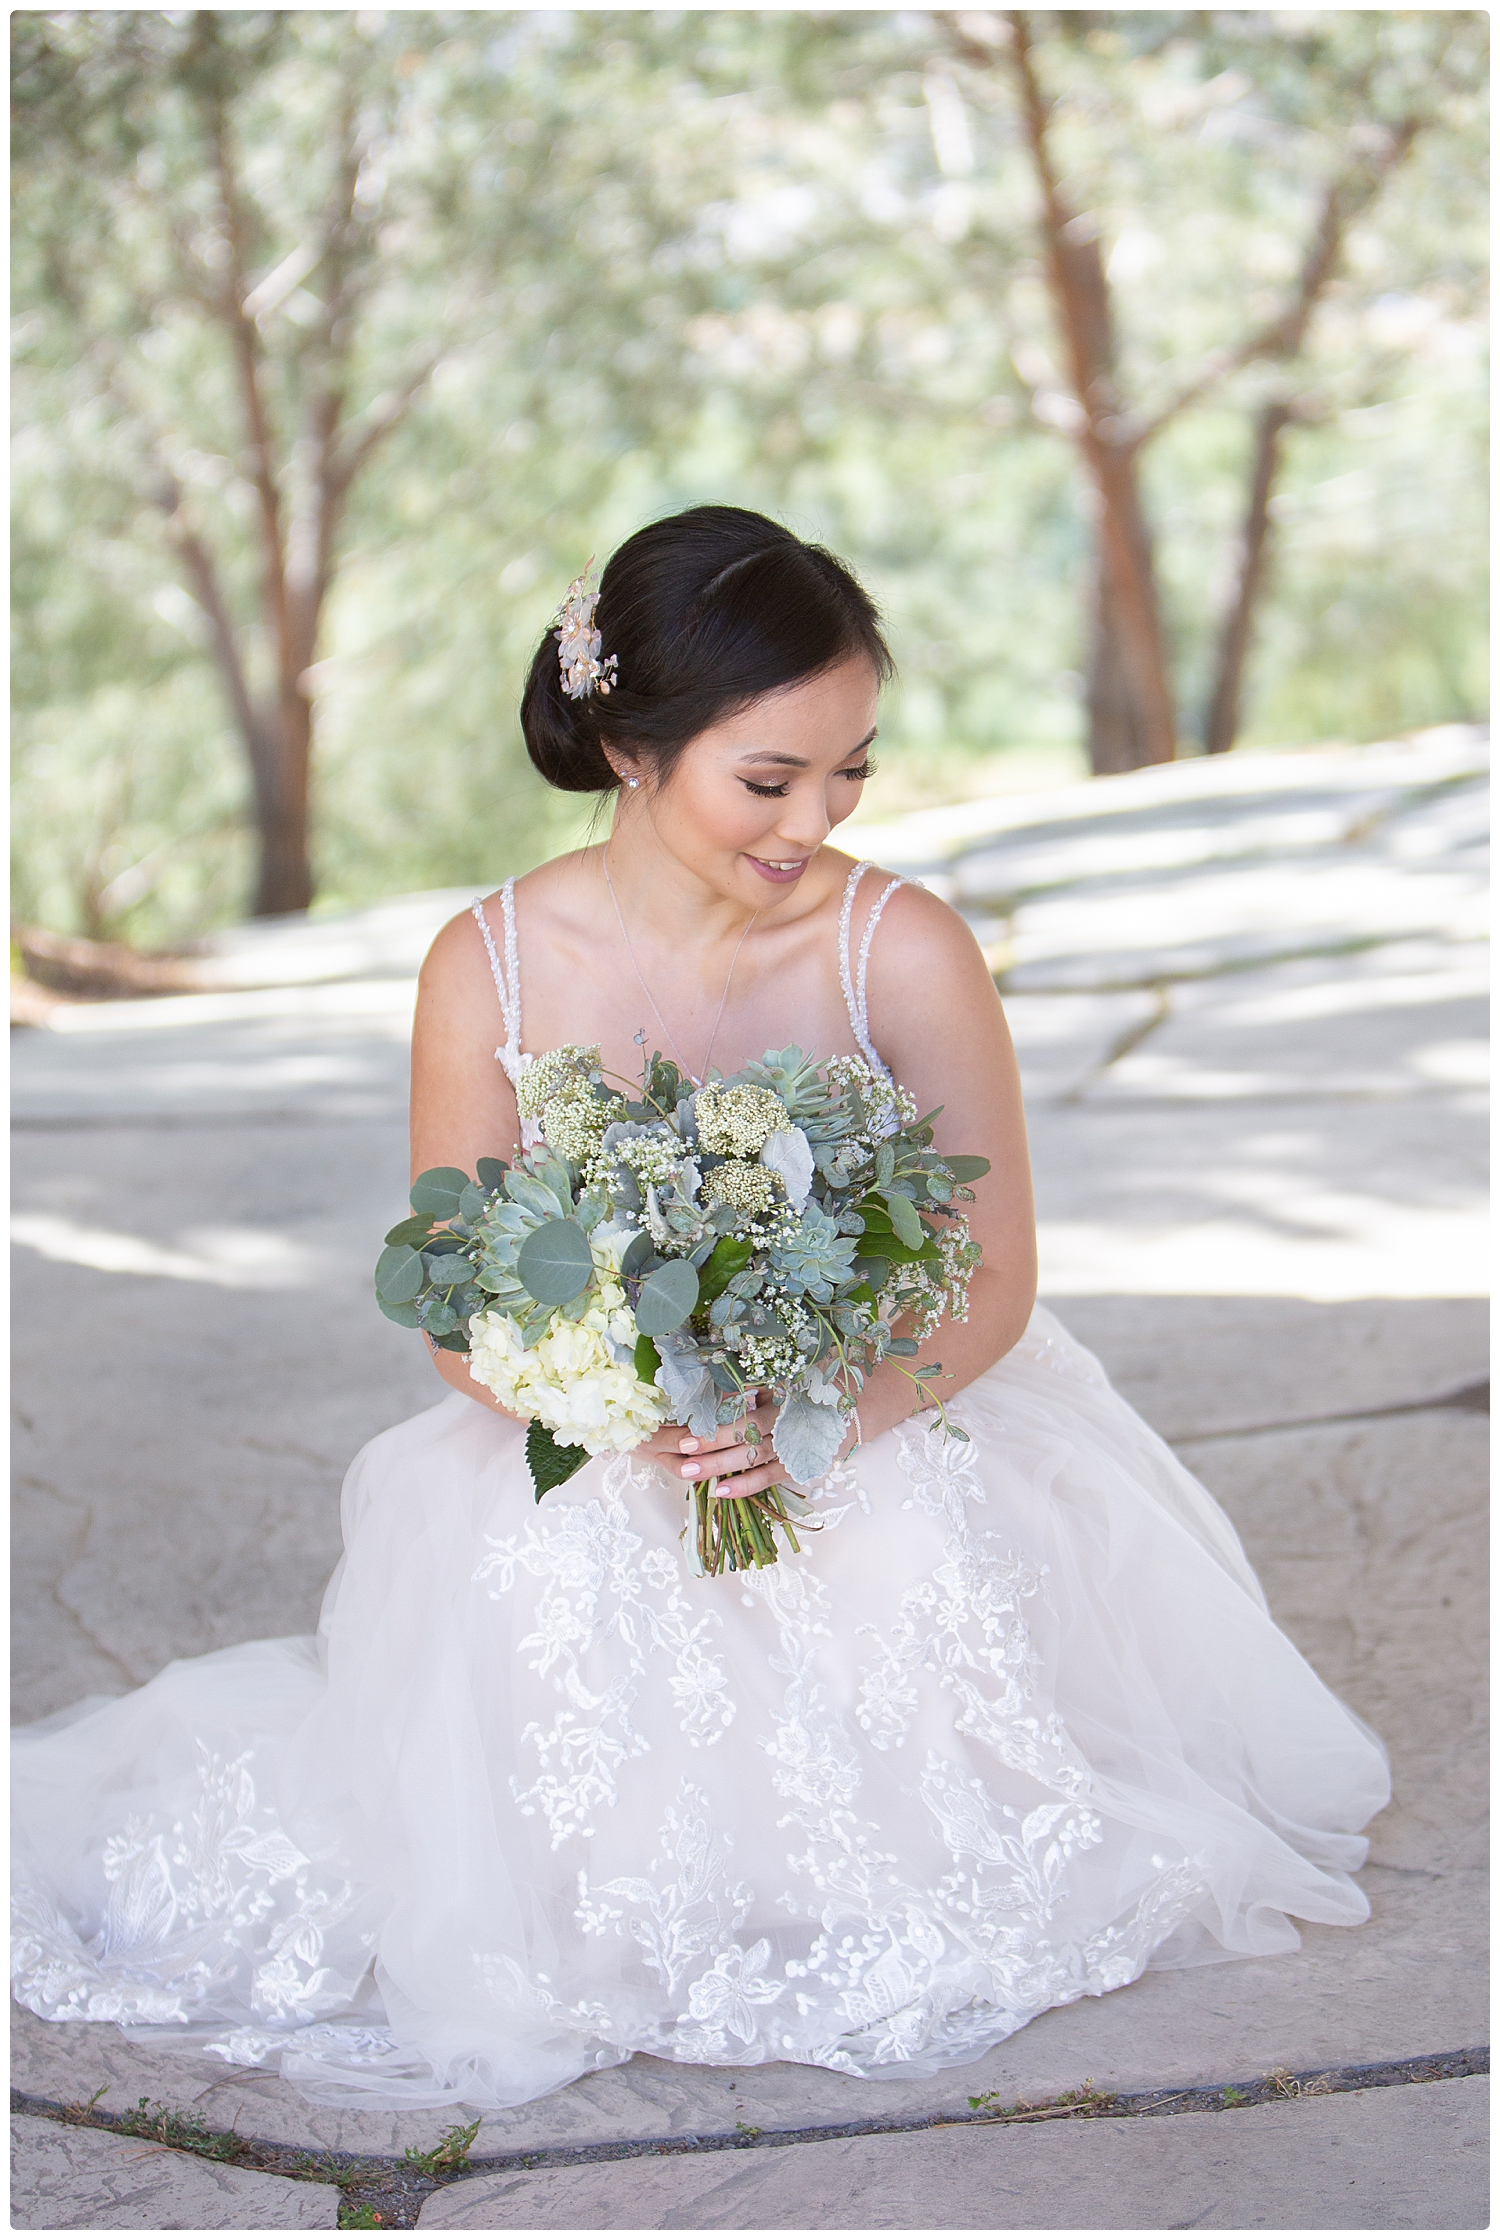 Megan+Froi wedding 050419_Renoda Campbell Photography-56.jpg